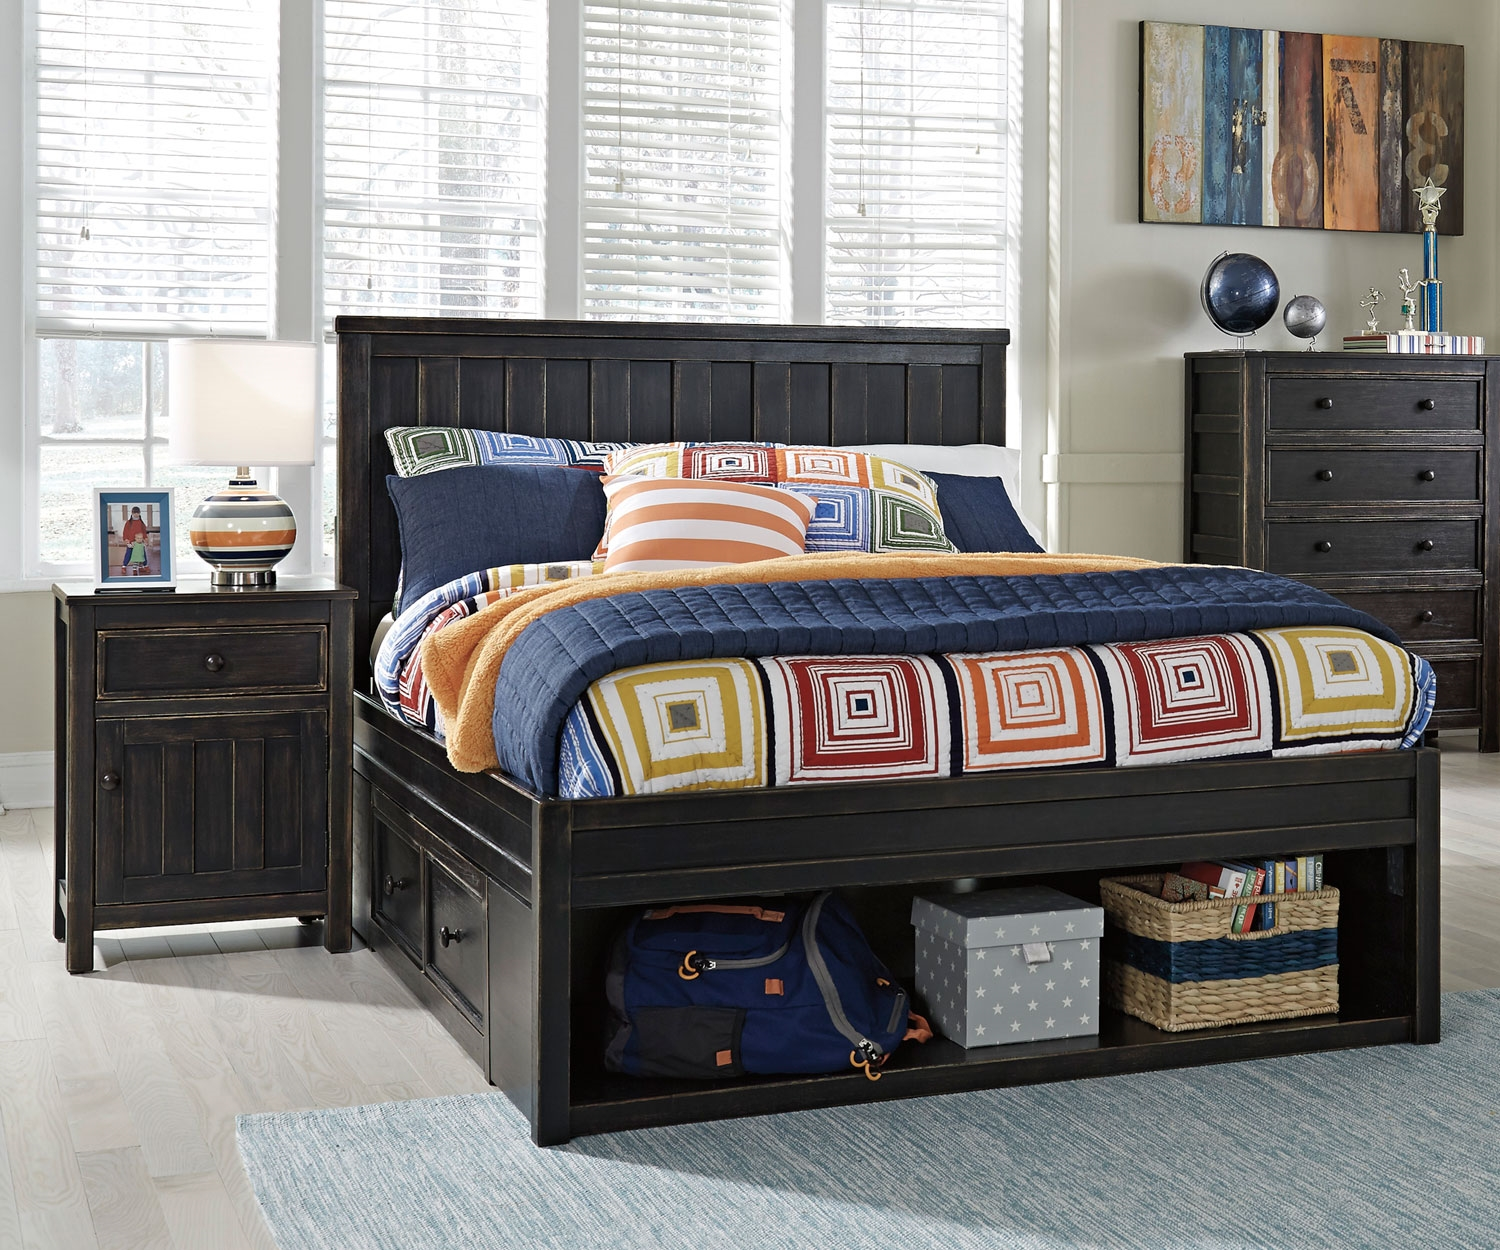 Ashley Furniture Bed With Storage and Headboards